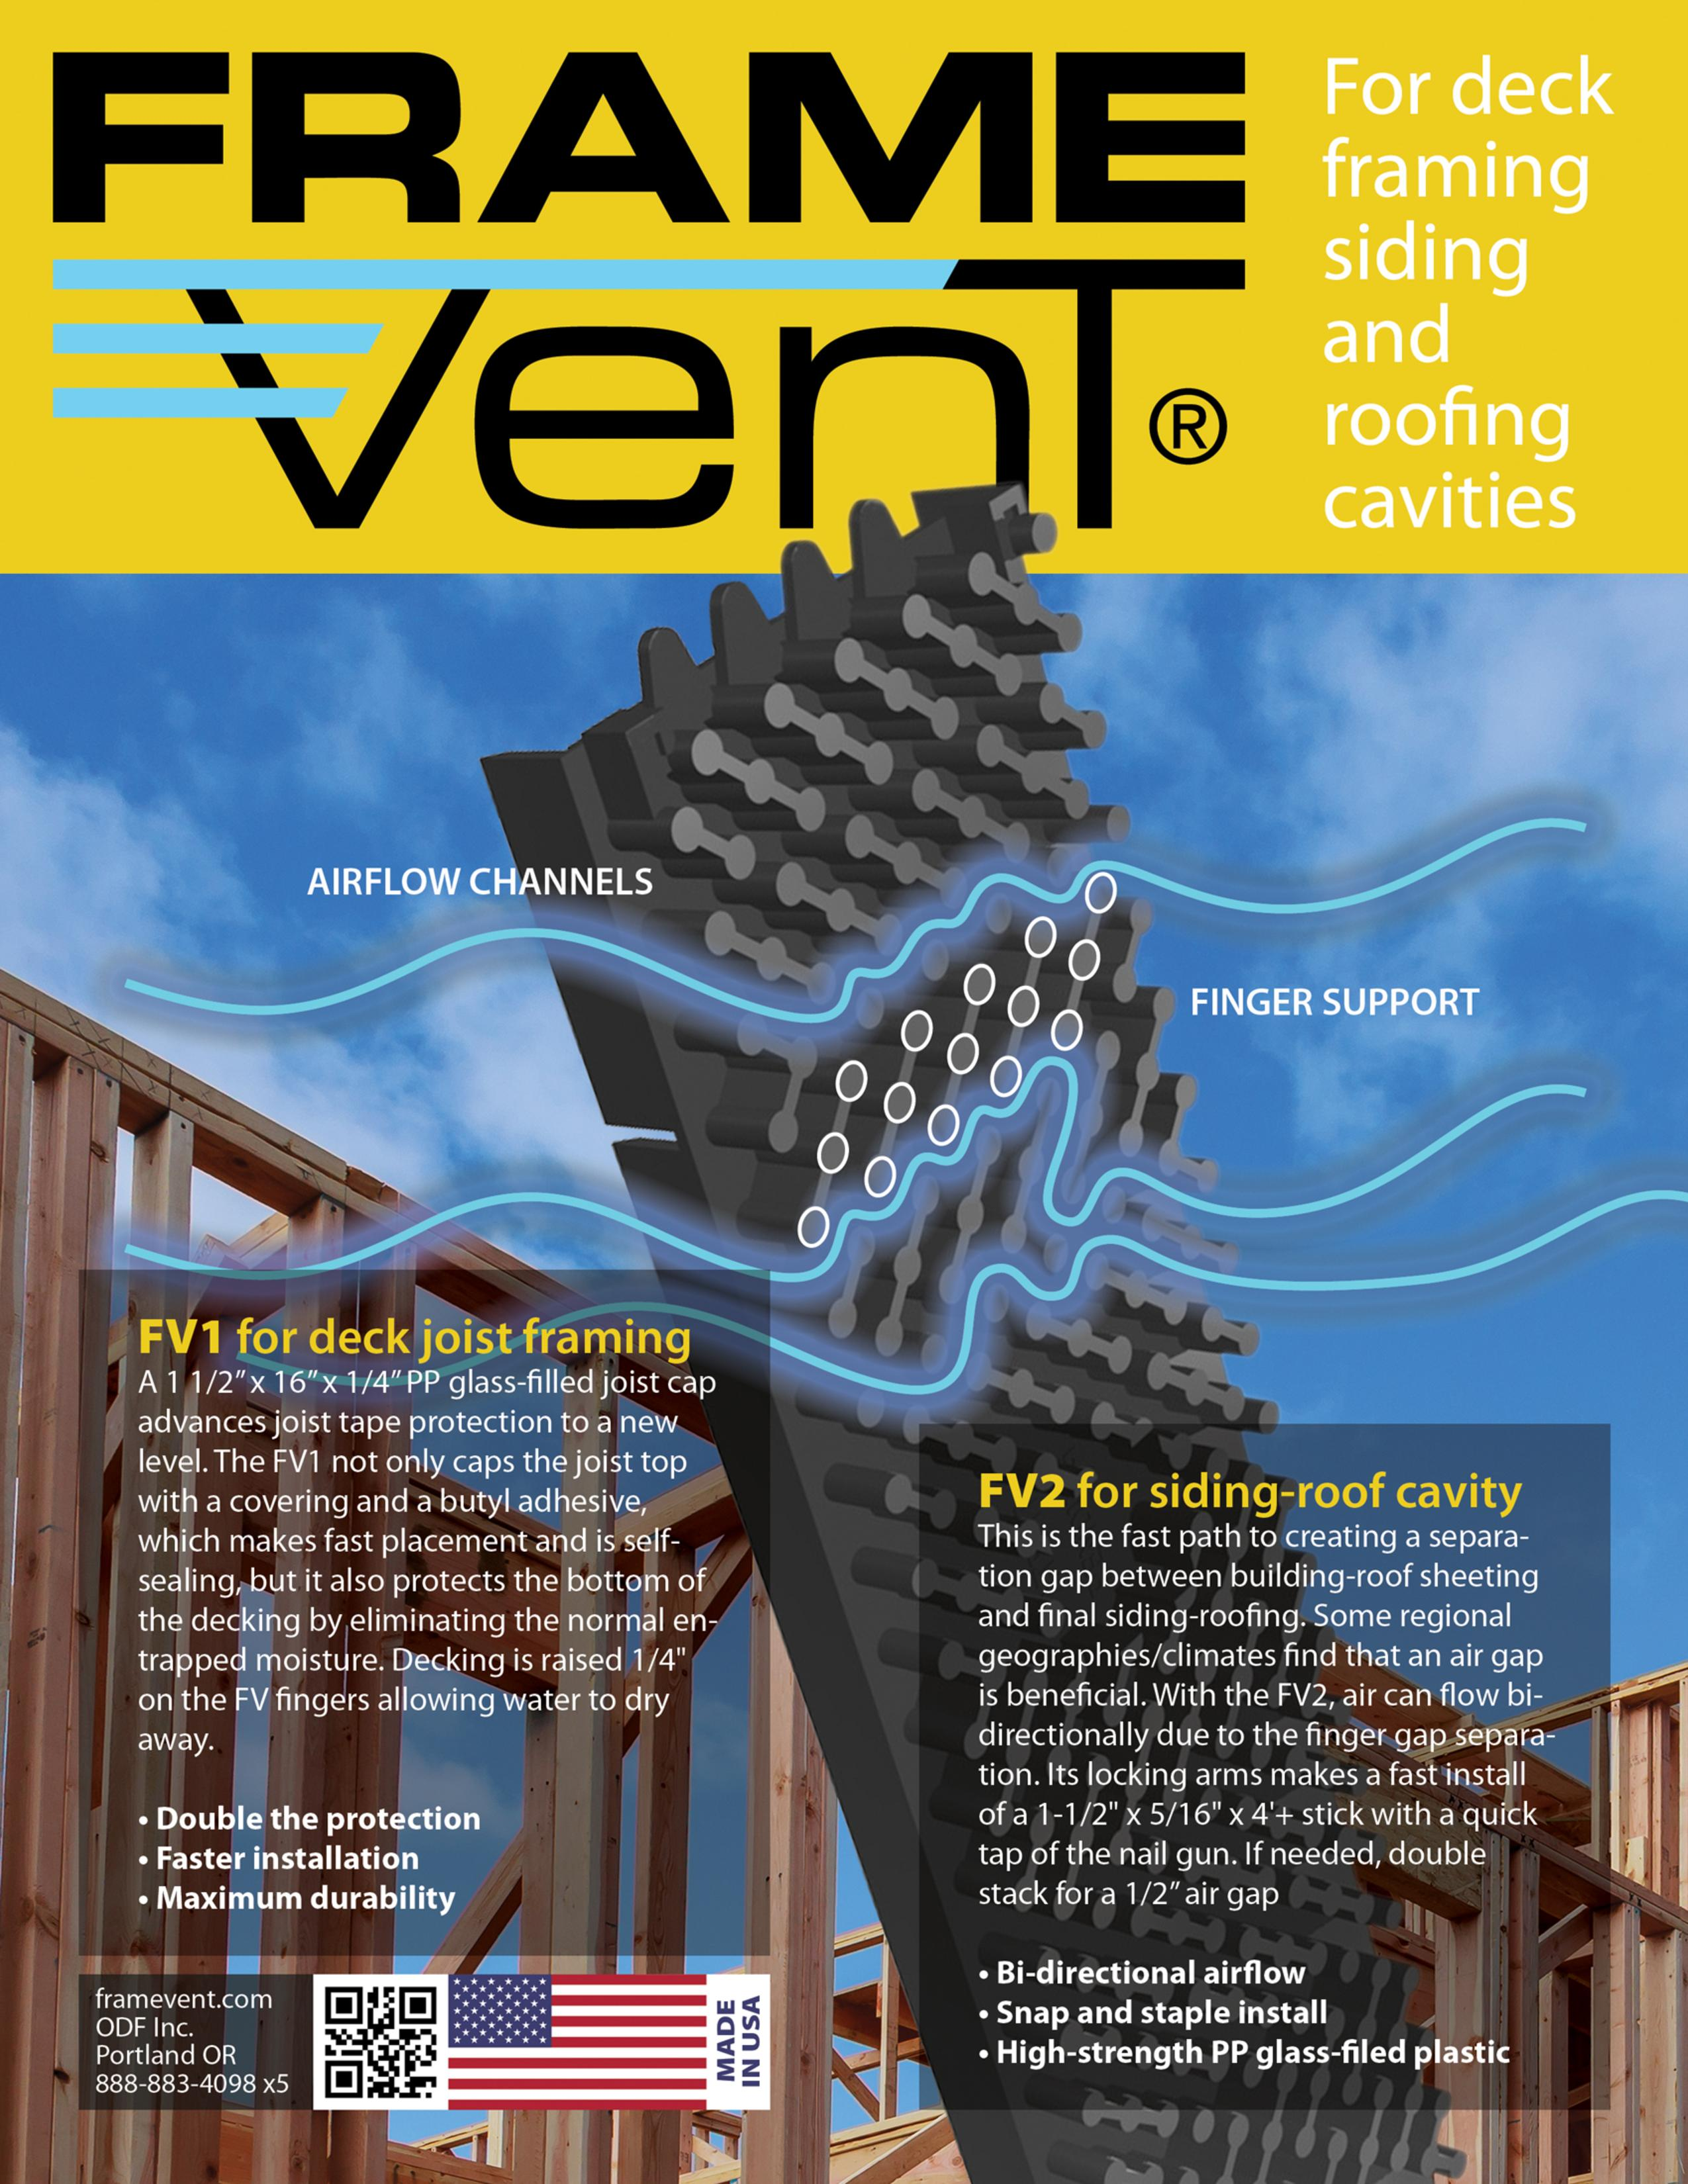 FrameVent® – Product Sets a New Standard for Deck Joist Moisture Barriers, Outmatching Currently Used Products in the Decking Construction Industry